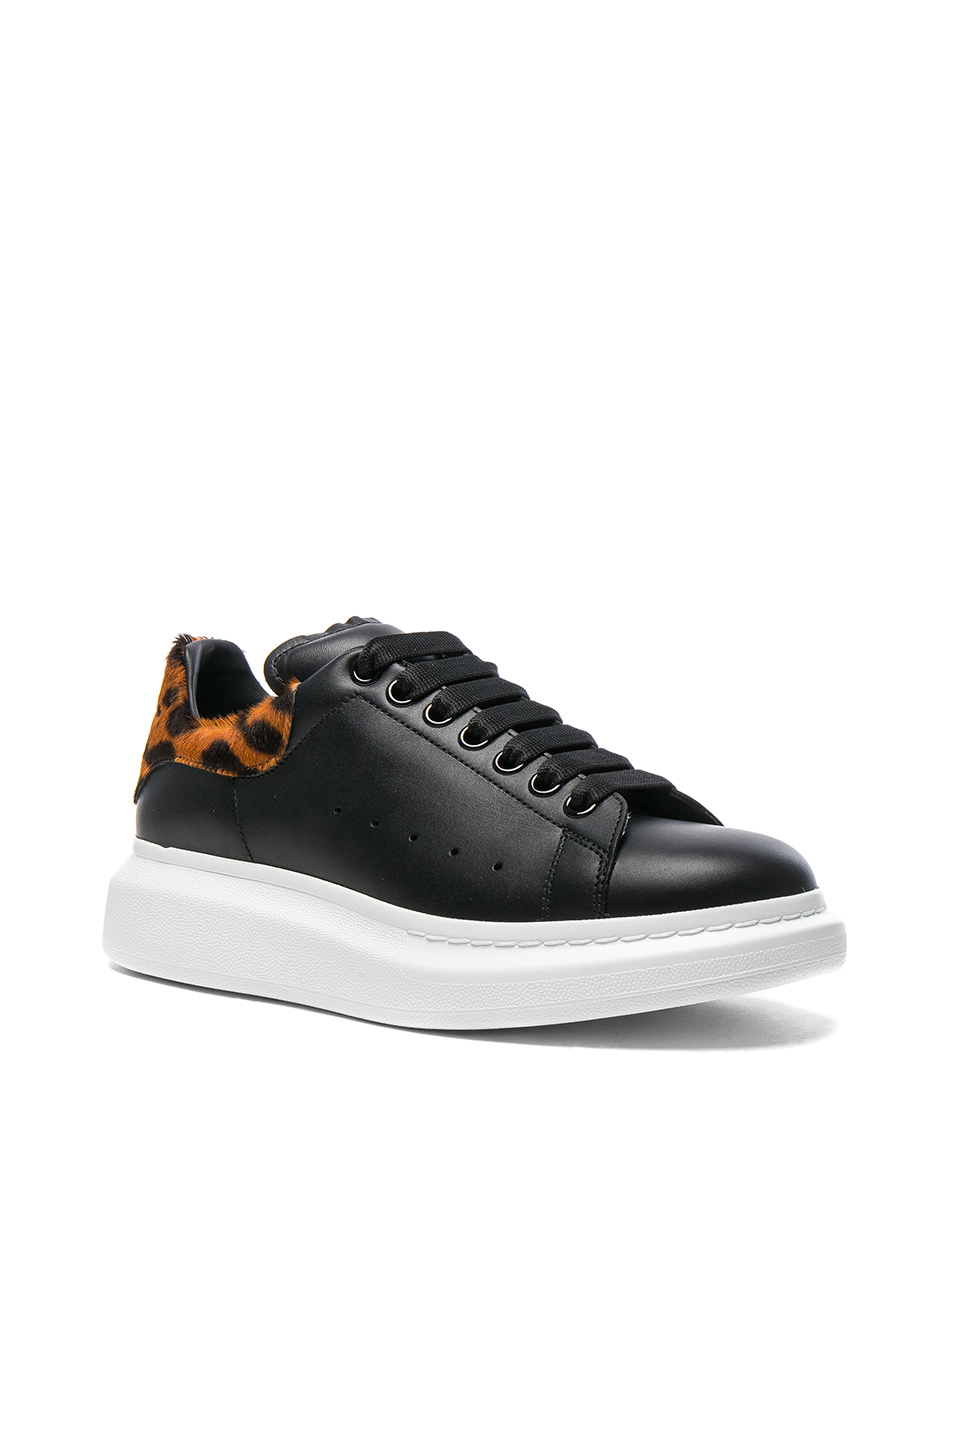 Alexander McQueen Leather Platform Sneakers With Calf Hair in Black